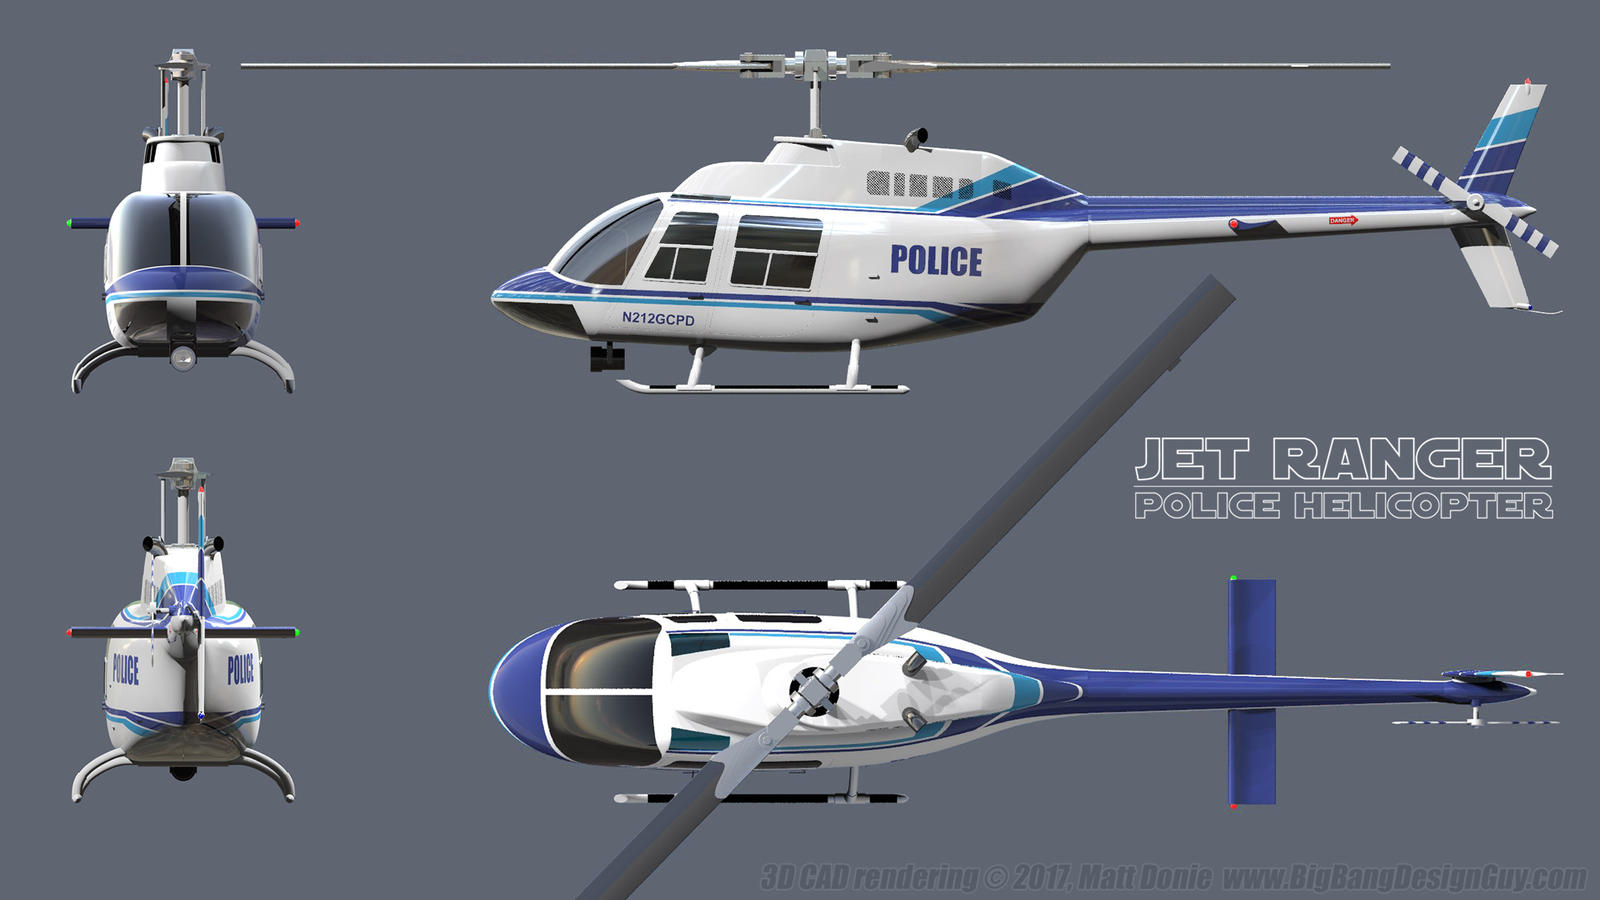 GCPD Police Helicopter - Jet Ranger Schematic 01 by ... on